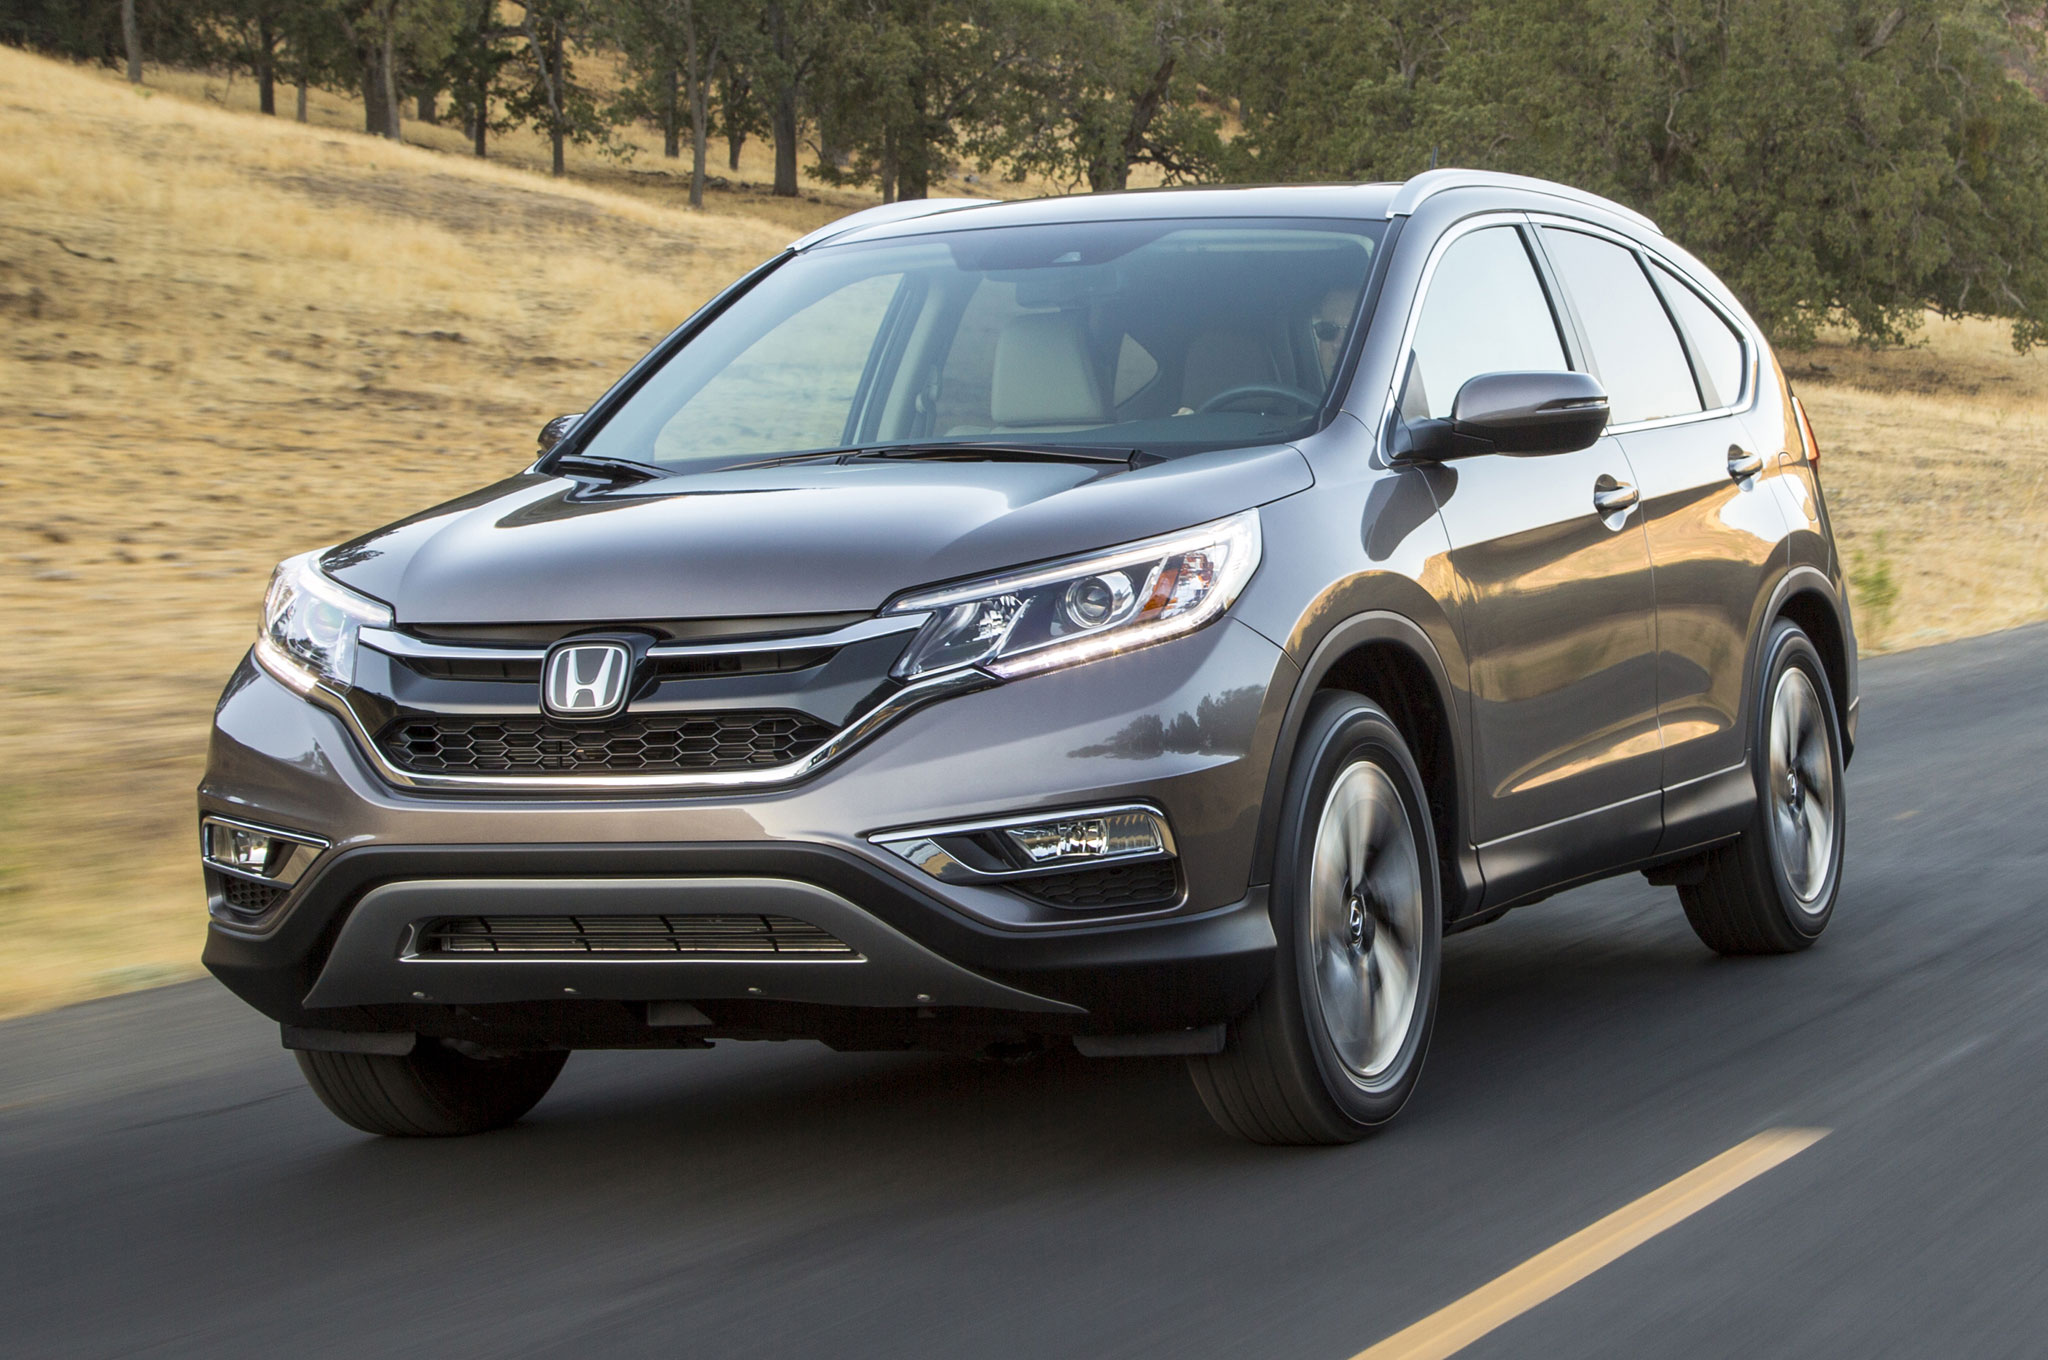 2015 Honda CR V Review. /106. Advertisement. To Skip. 1|106